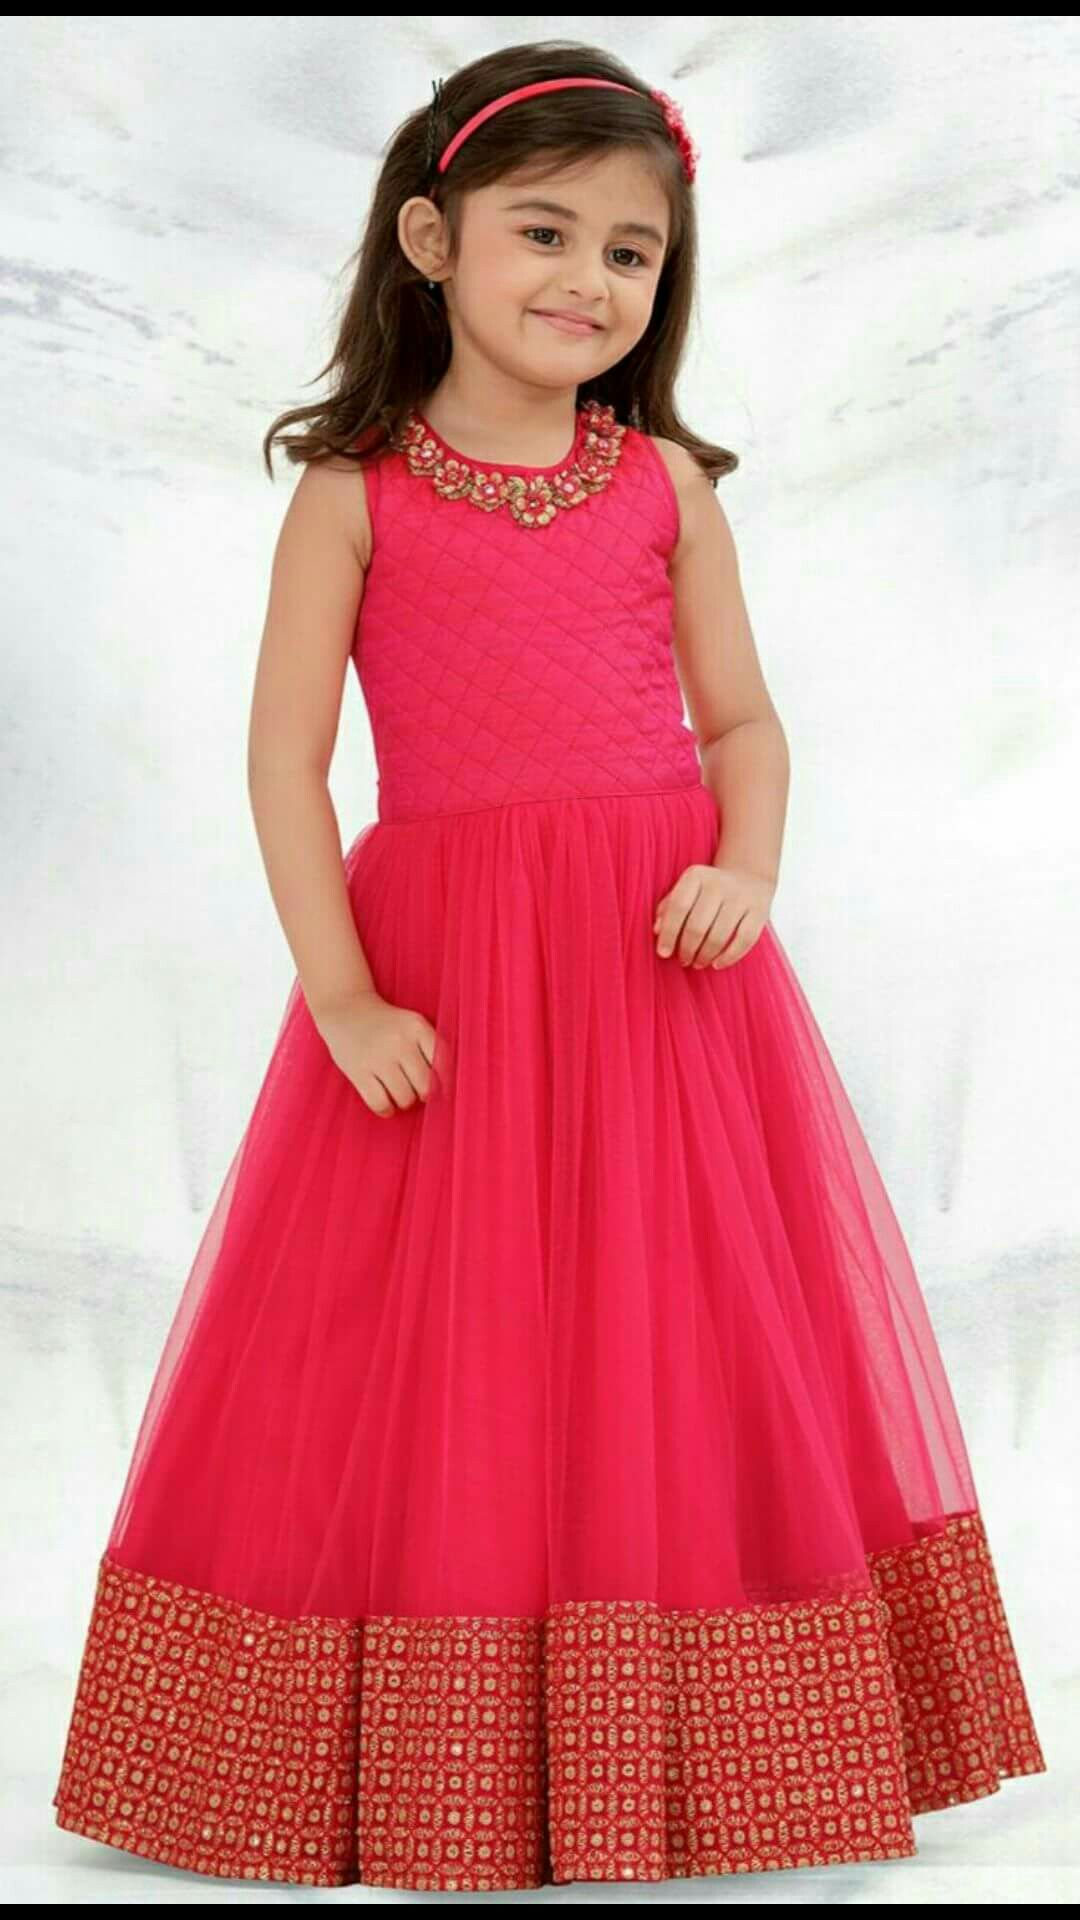 e513ace7afea Frocks. Frocks Cute Dresses